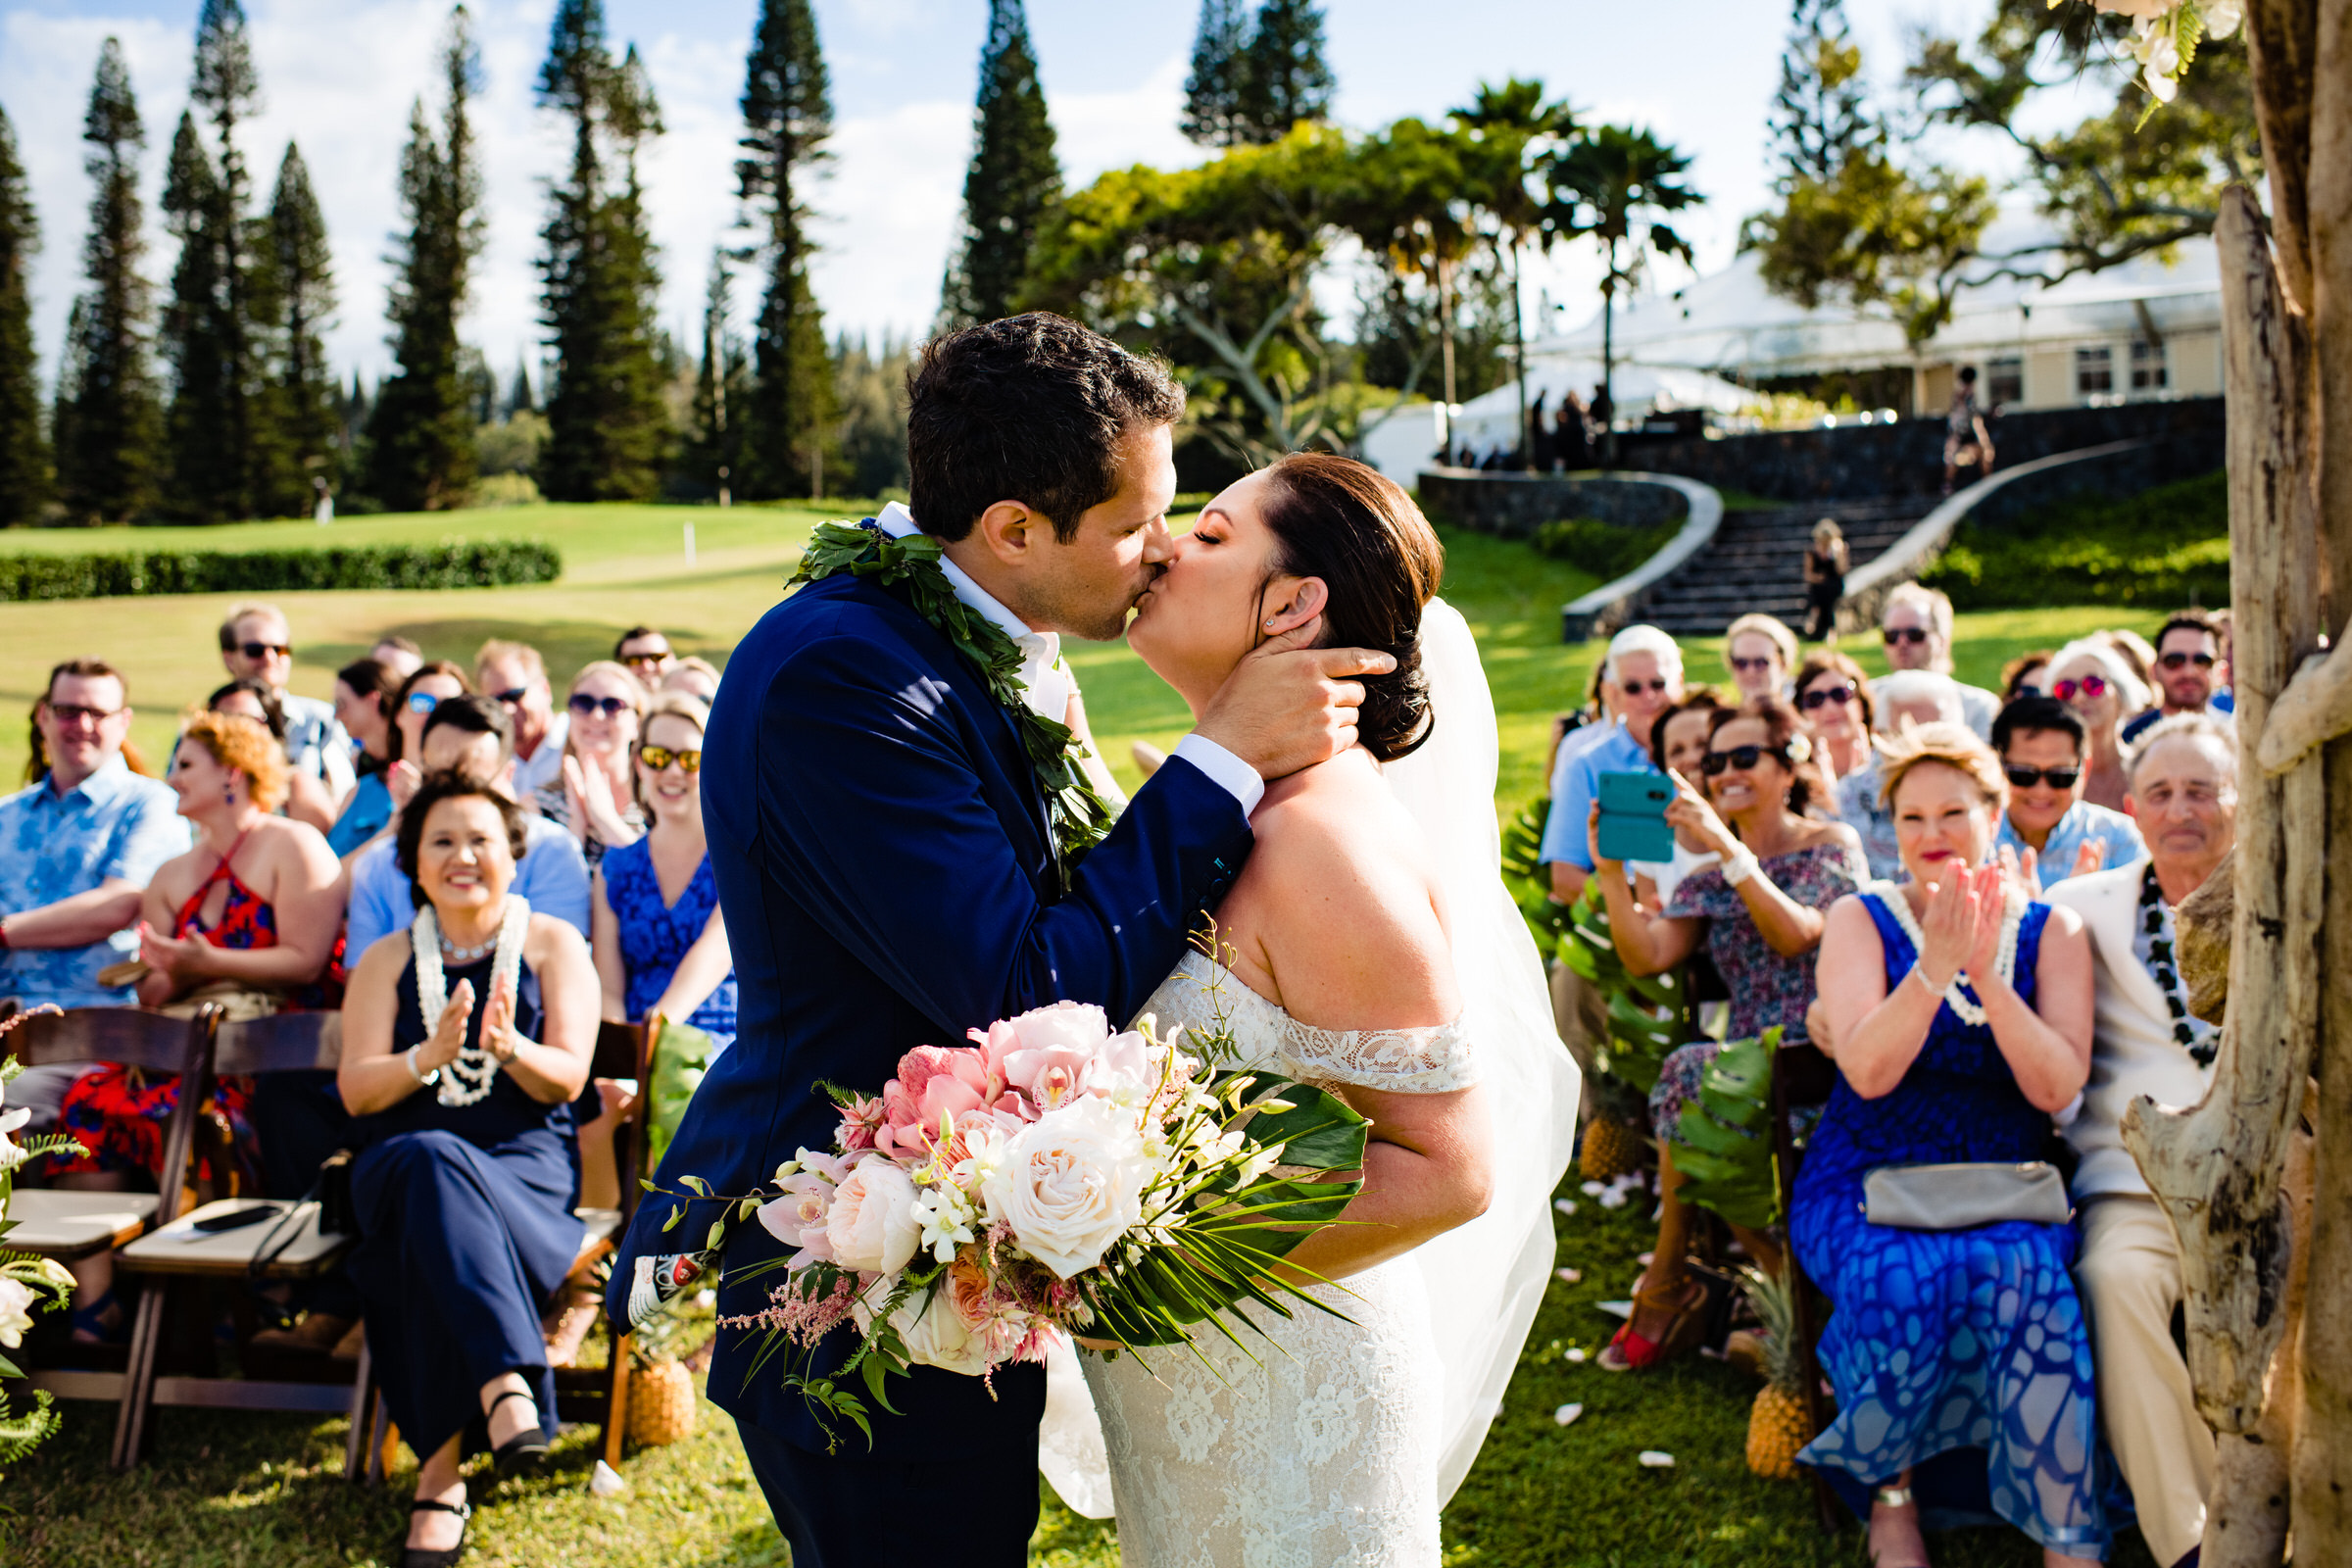 Kissing the bride at outdoor ceremony - photo by Angela Nelson Photography